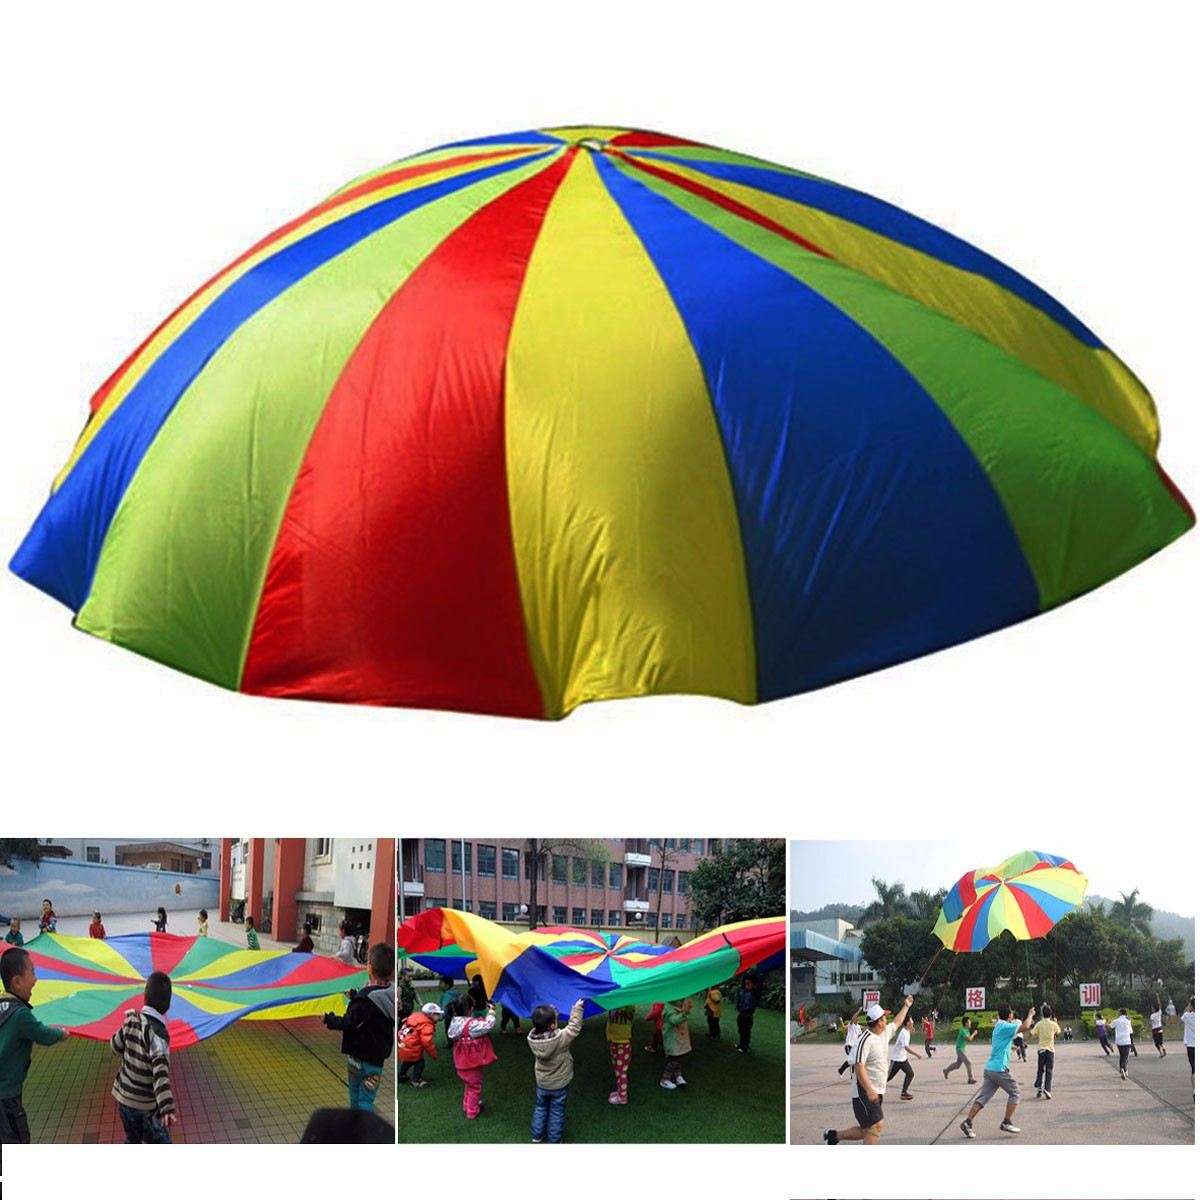 Handles Children Kids Teamwork Cooperative Play Rainbow Parachute 6m Waterproof Outdoor Game Exercise Sport Tool Toy hand throwing kids mini play parachute toy soldier outdoor sports children s educational toys free shipping